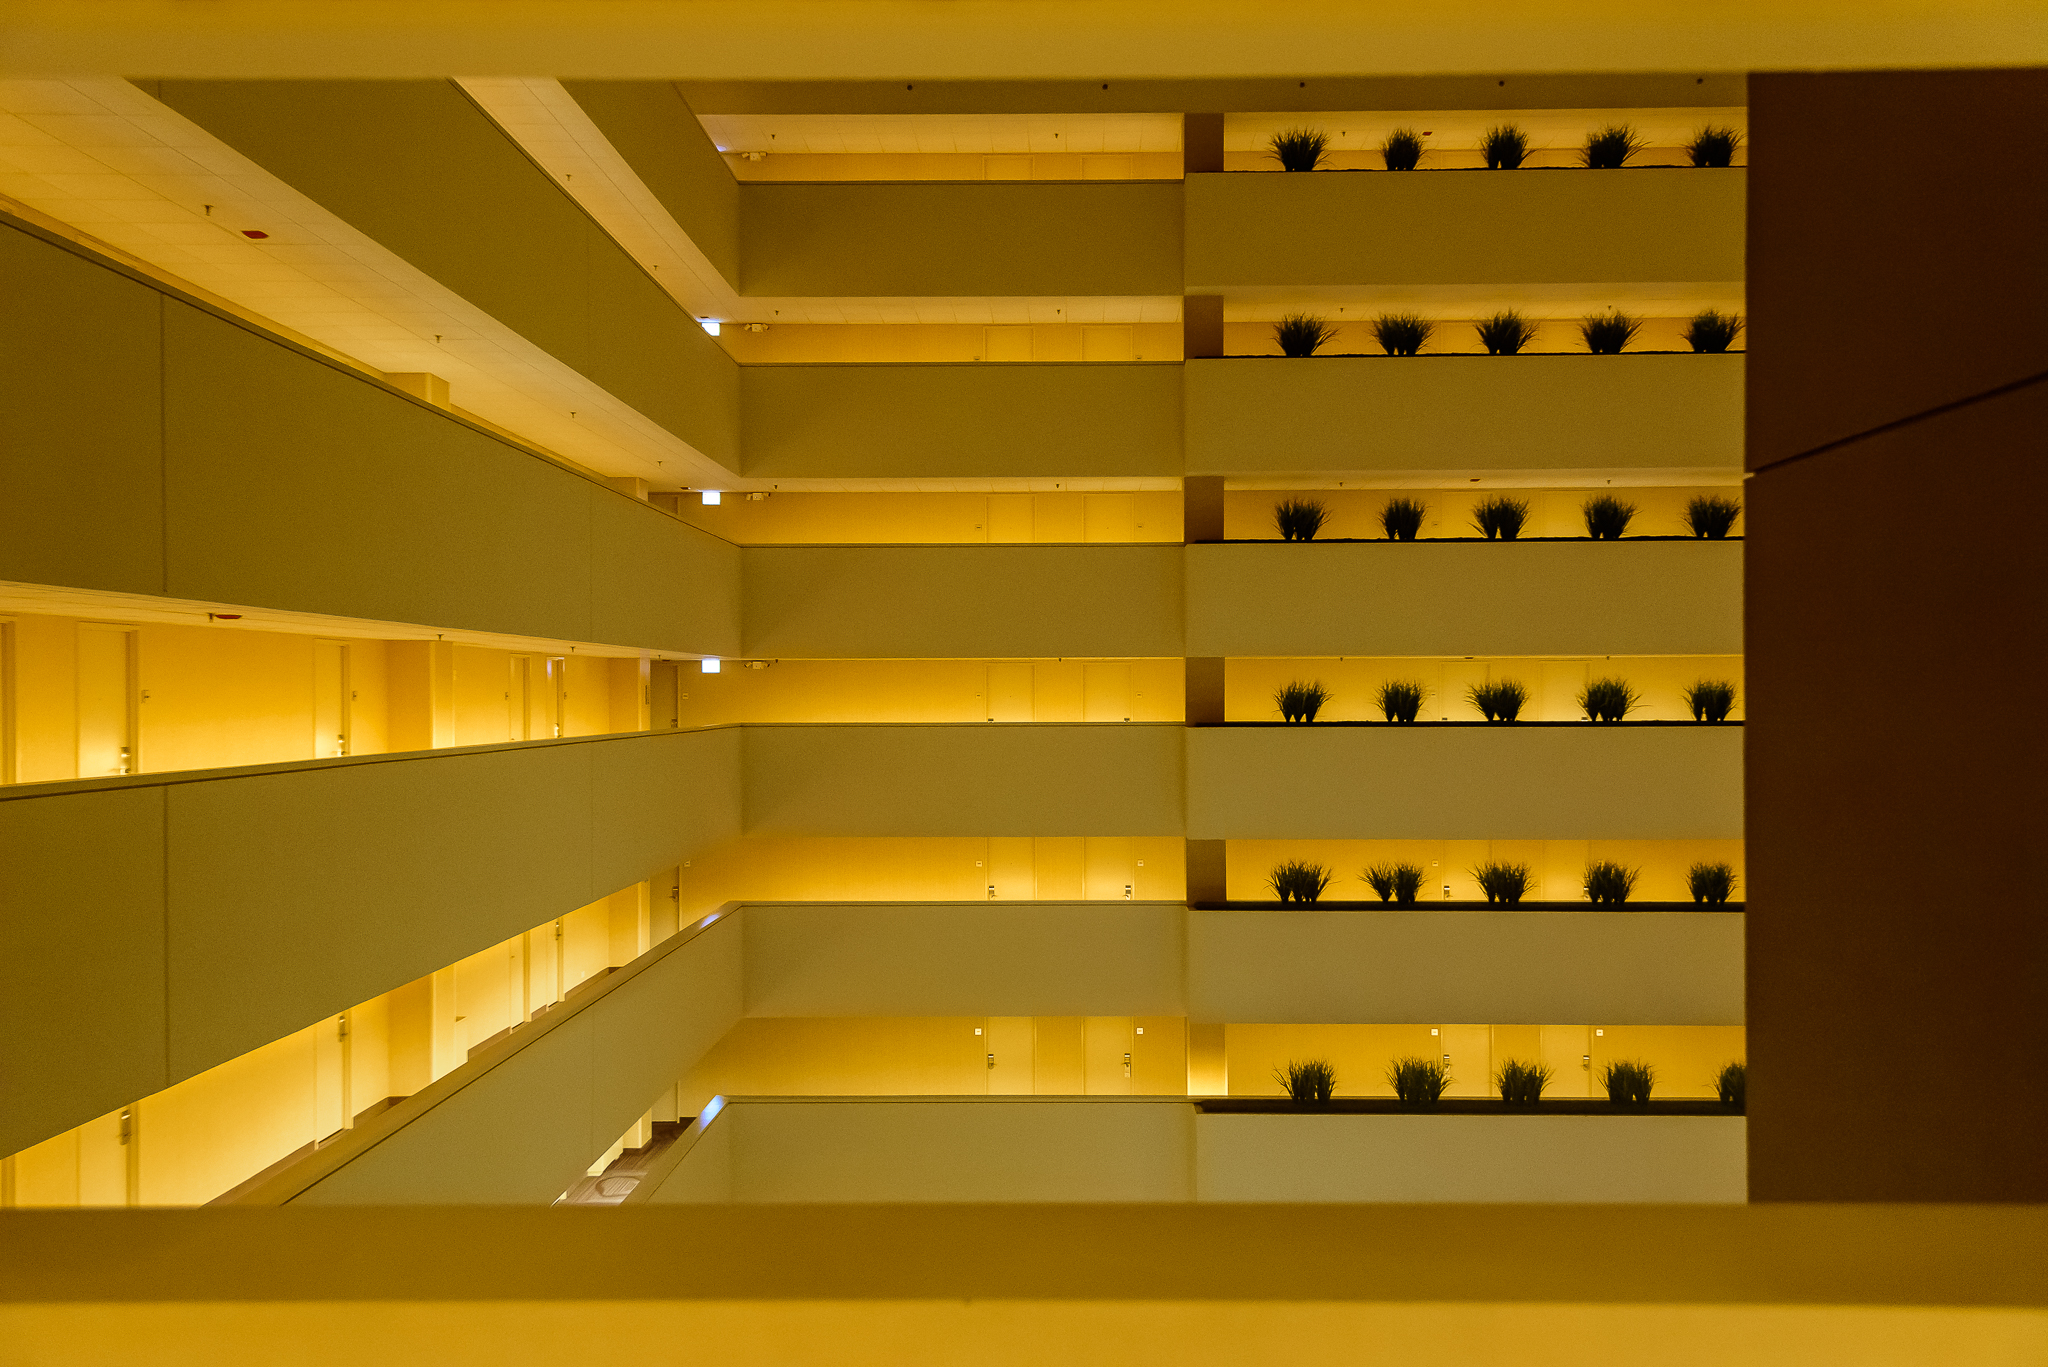 When the Holiday Inn has amazing lines, you know it's a city that values design. Downtown, Chicago.